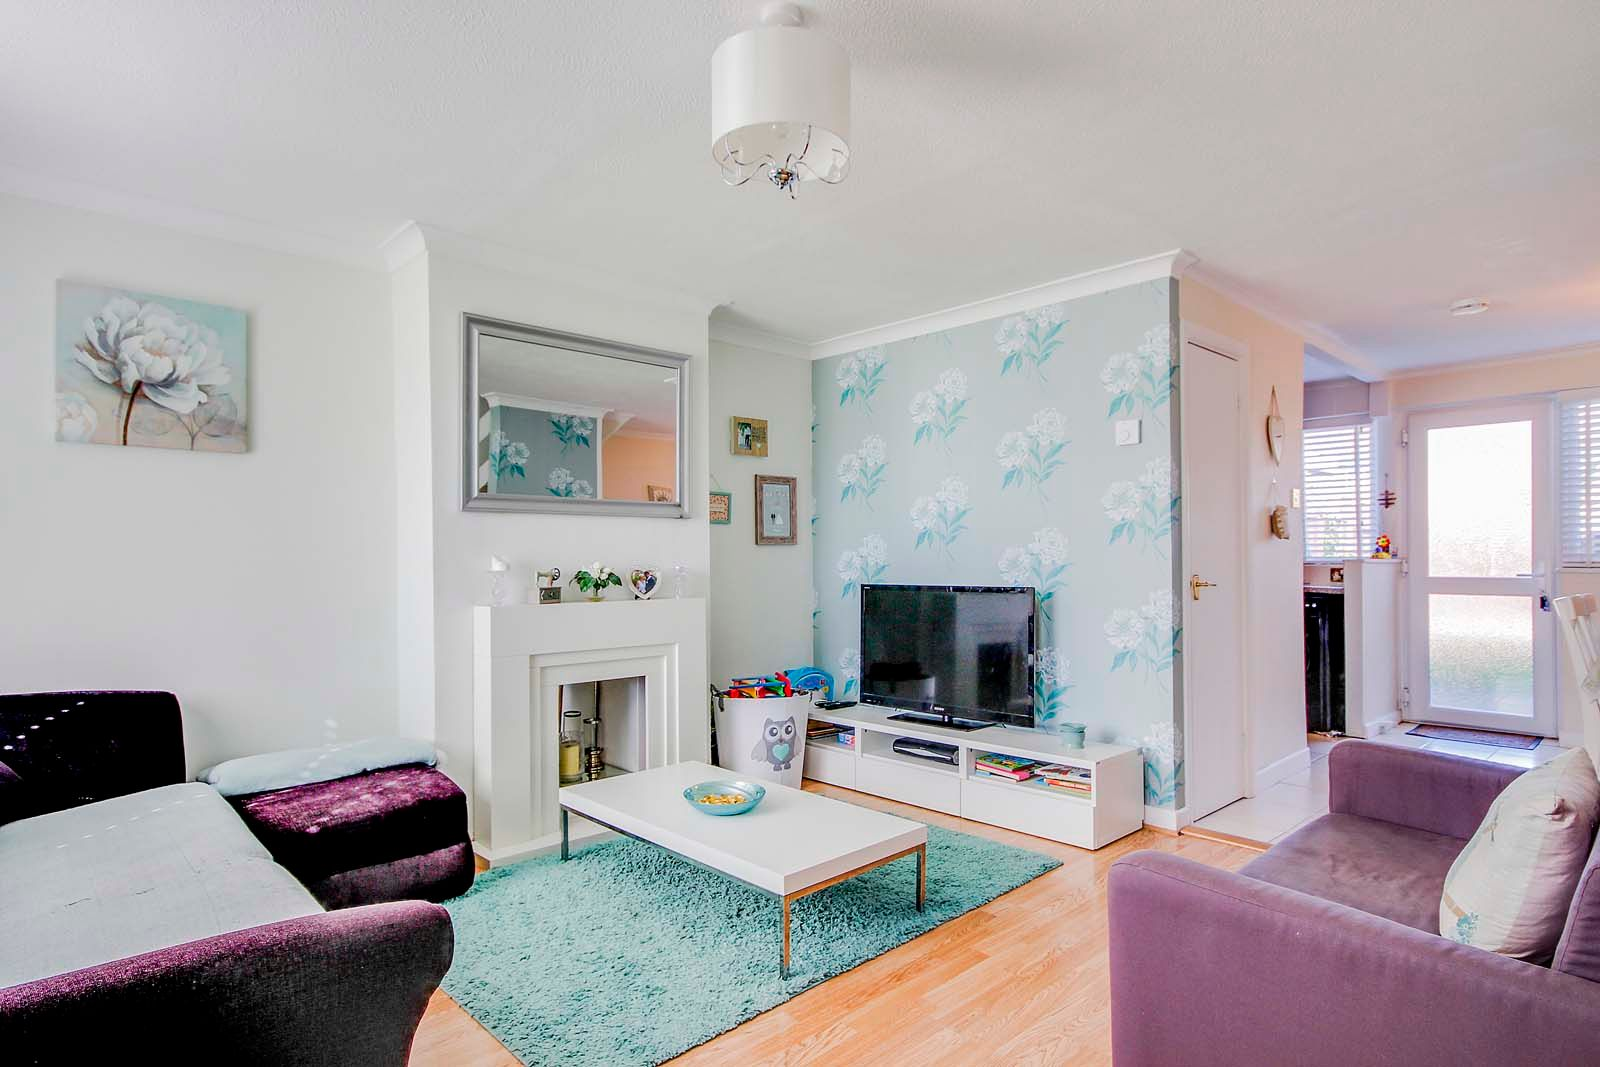 3 bed House for sale in East Preston - Sitting room (Property Image 1)